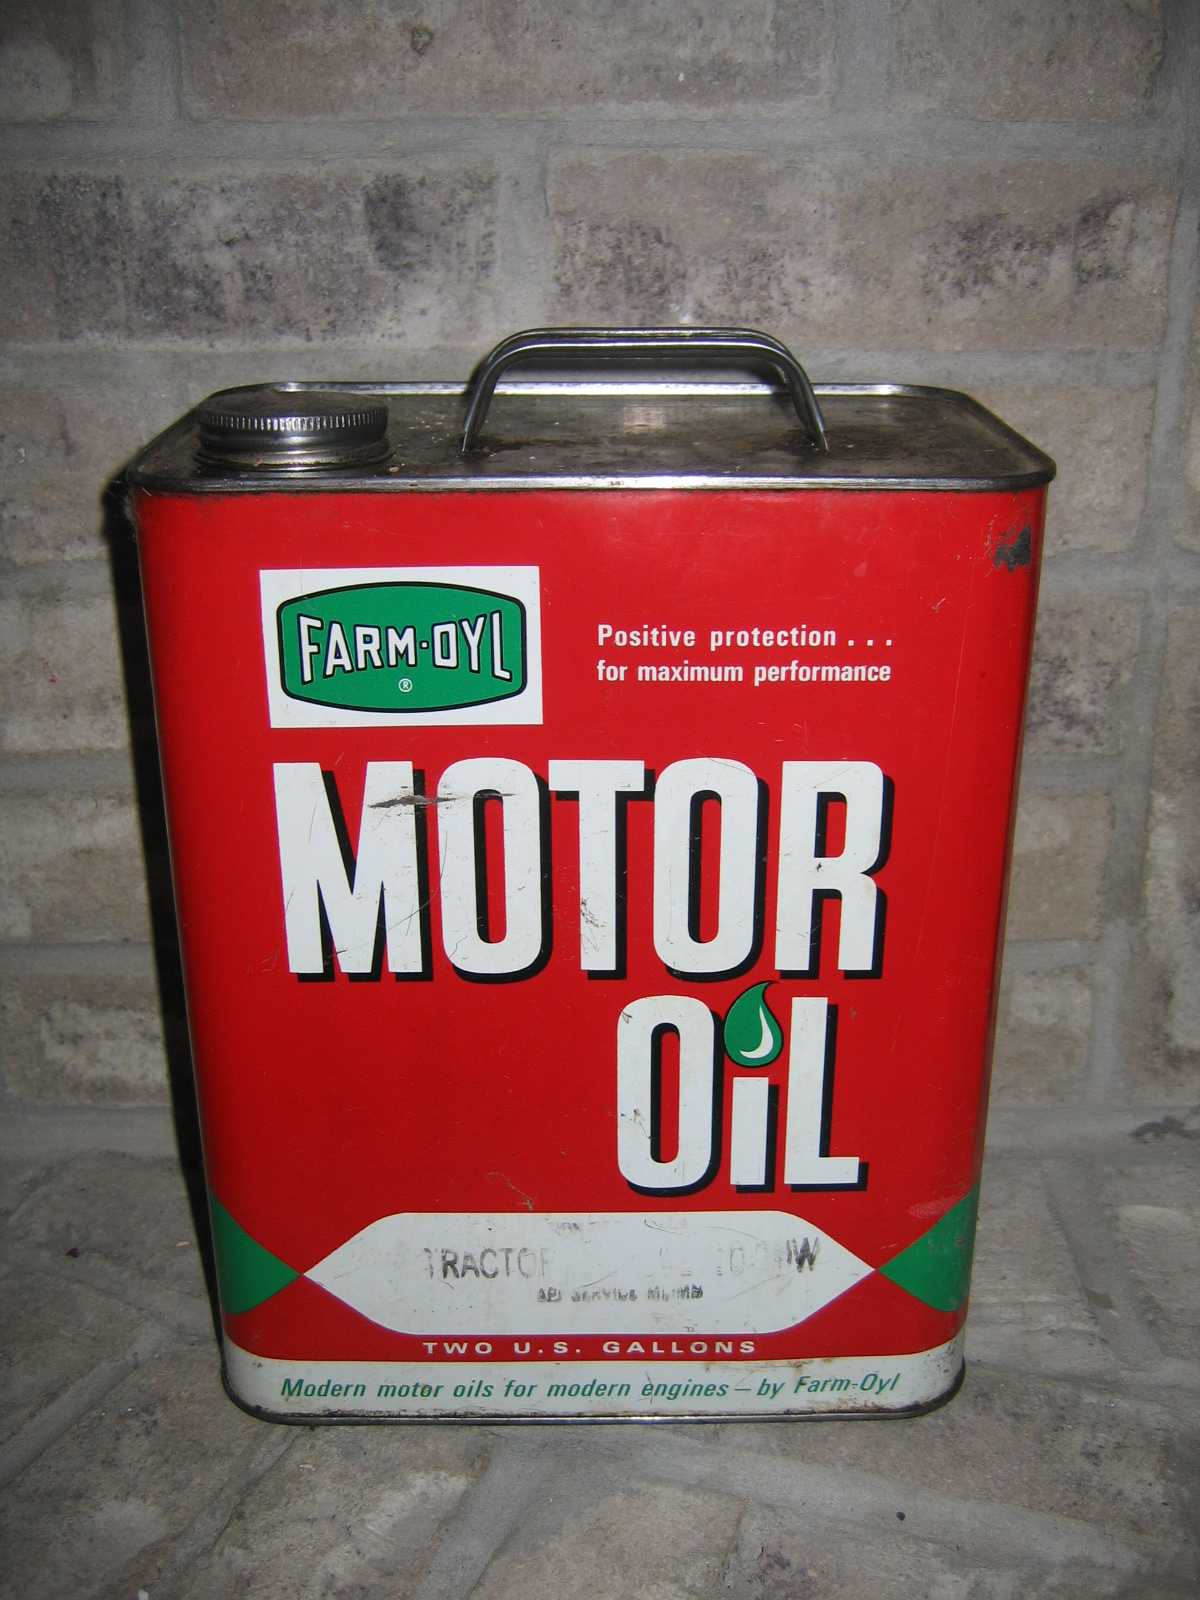 dating old oil cans Results 1 - 48 of 18809 collectible gas & oil advertising cans and buckets x 5 1/2 x 5 1/2 $17500 $1265 shipping or best offer vintage french auto marshall oil can race car gas 5 gallon dating from 1932 $2000 free shipping.